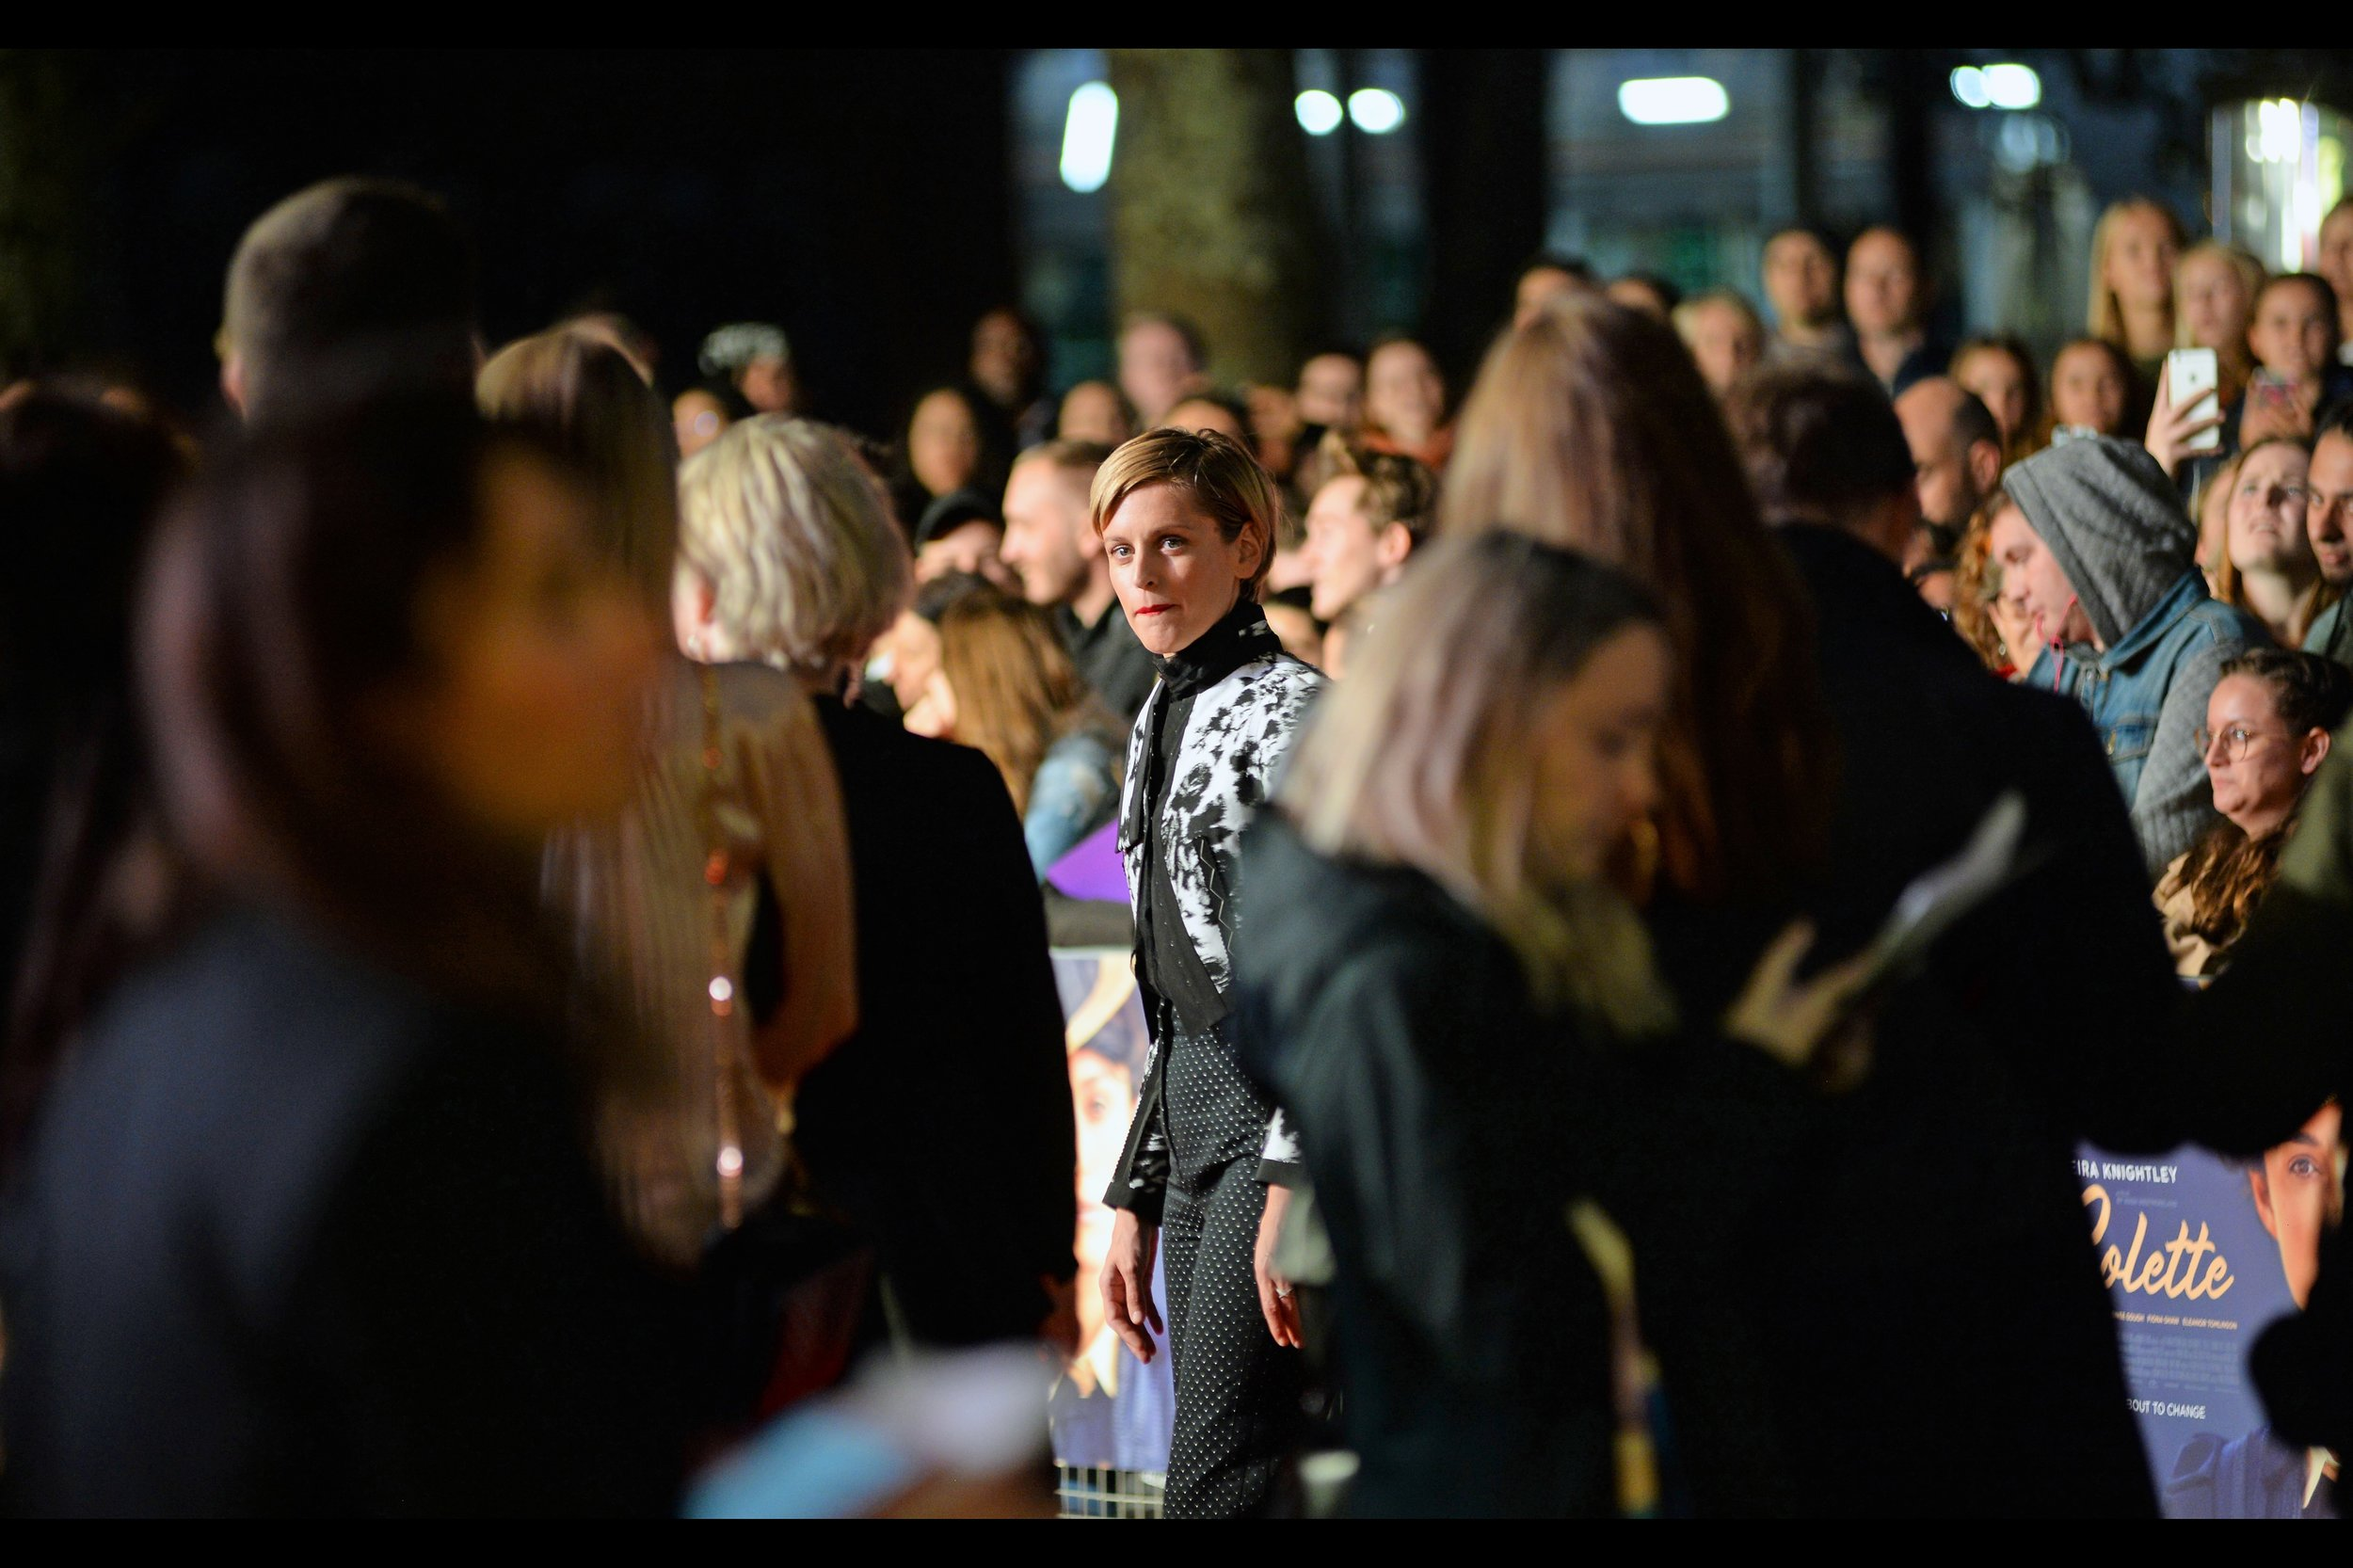 """Denise Gough arrives, and in about 20 seconds so does the rain. Of her imdb entry, the movie """"'71'"""" ( 'Protective Woman at Riot' ) and PS4 game """"Mass Effect Andromeda"""" ( 'additional voices' ) are the two credits I'm most familiar with."""